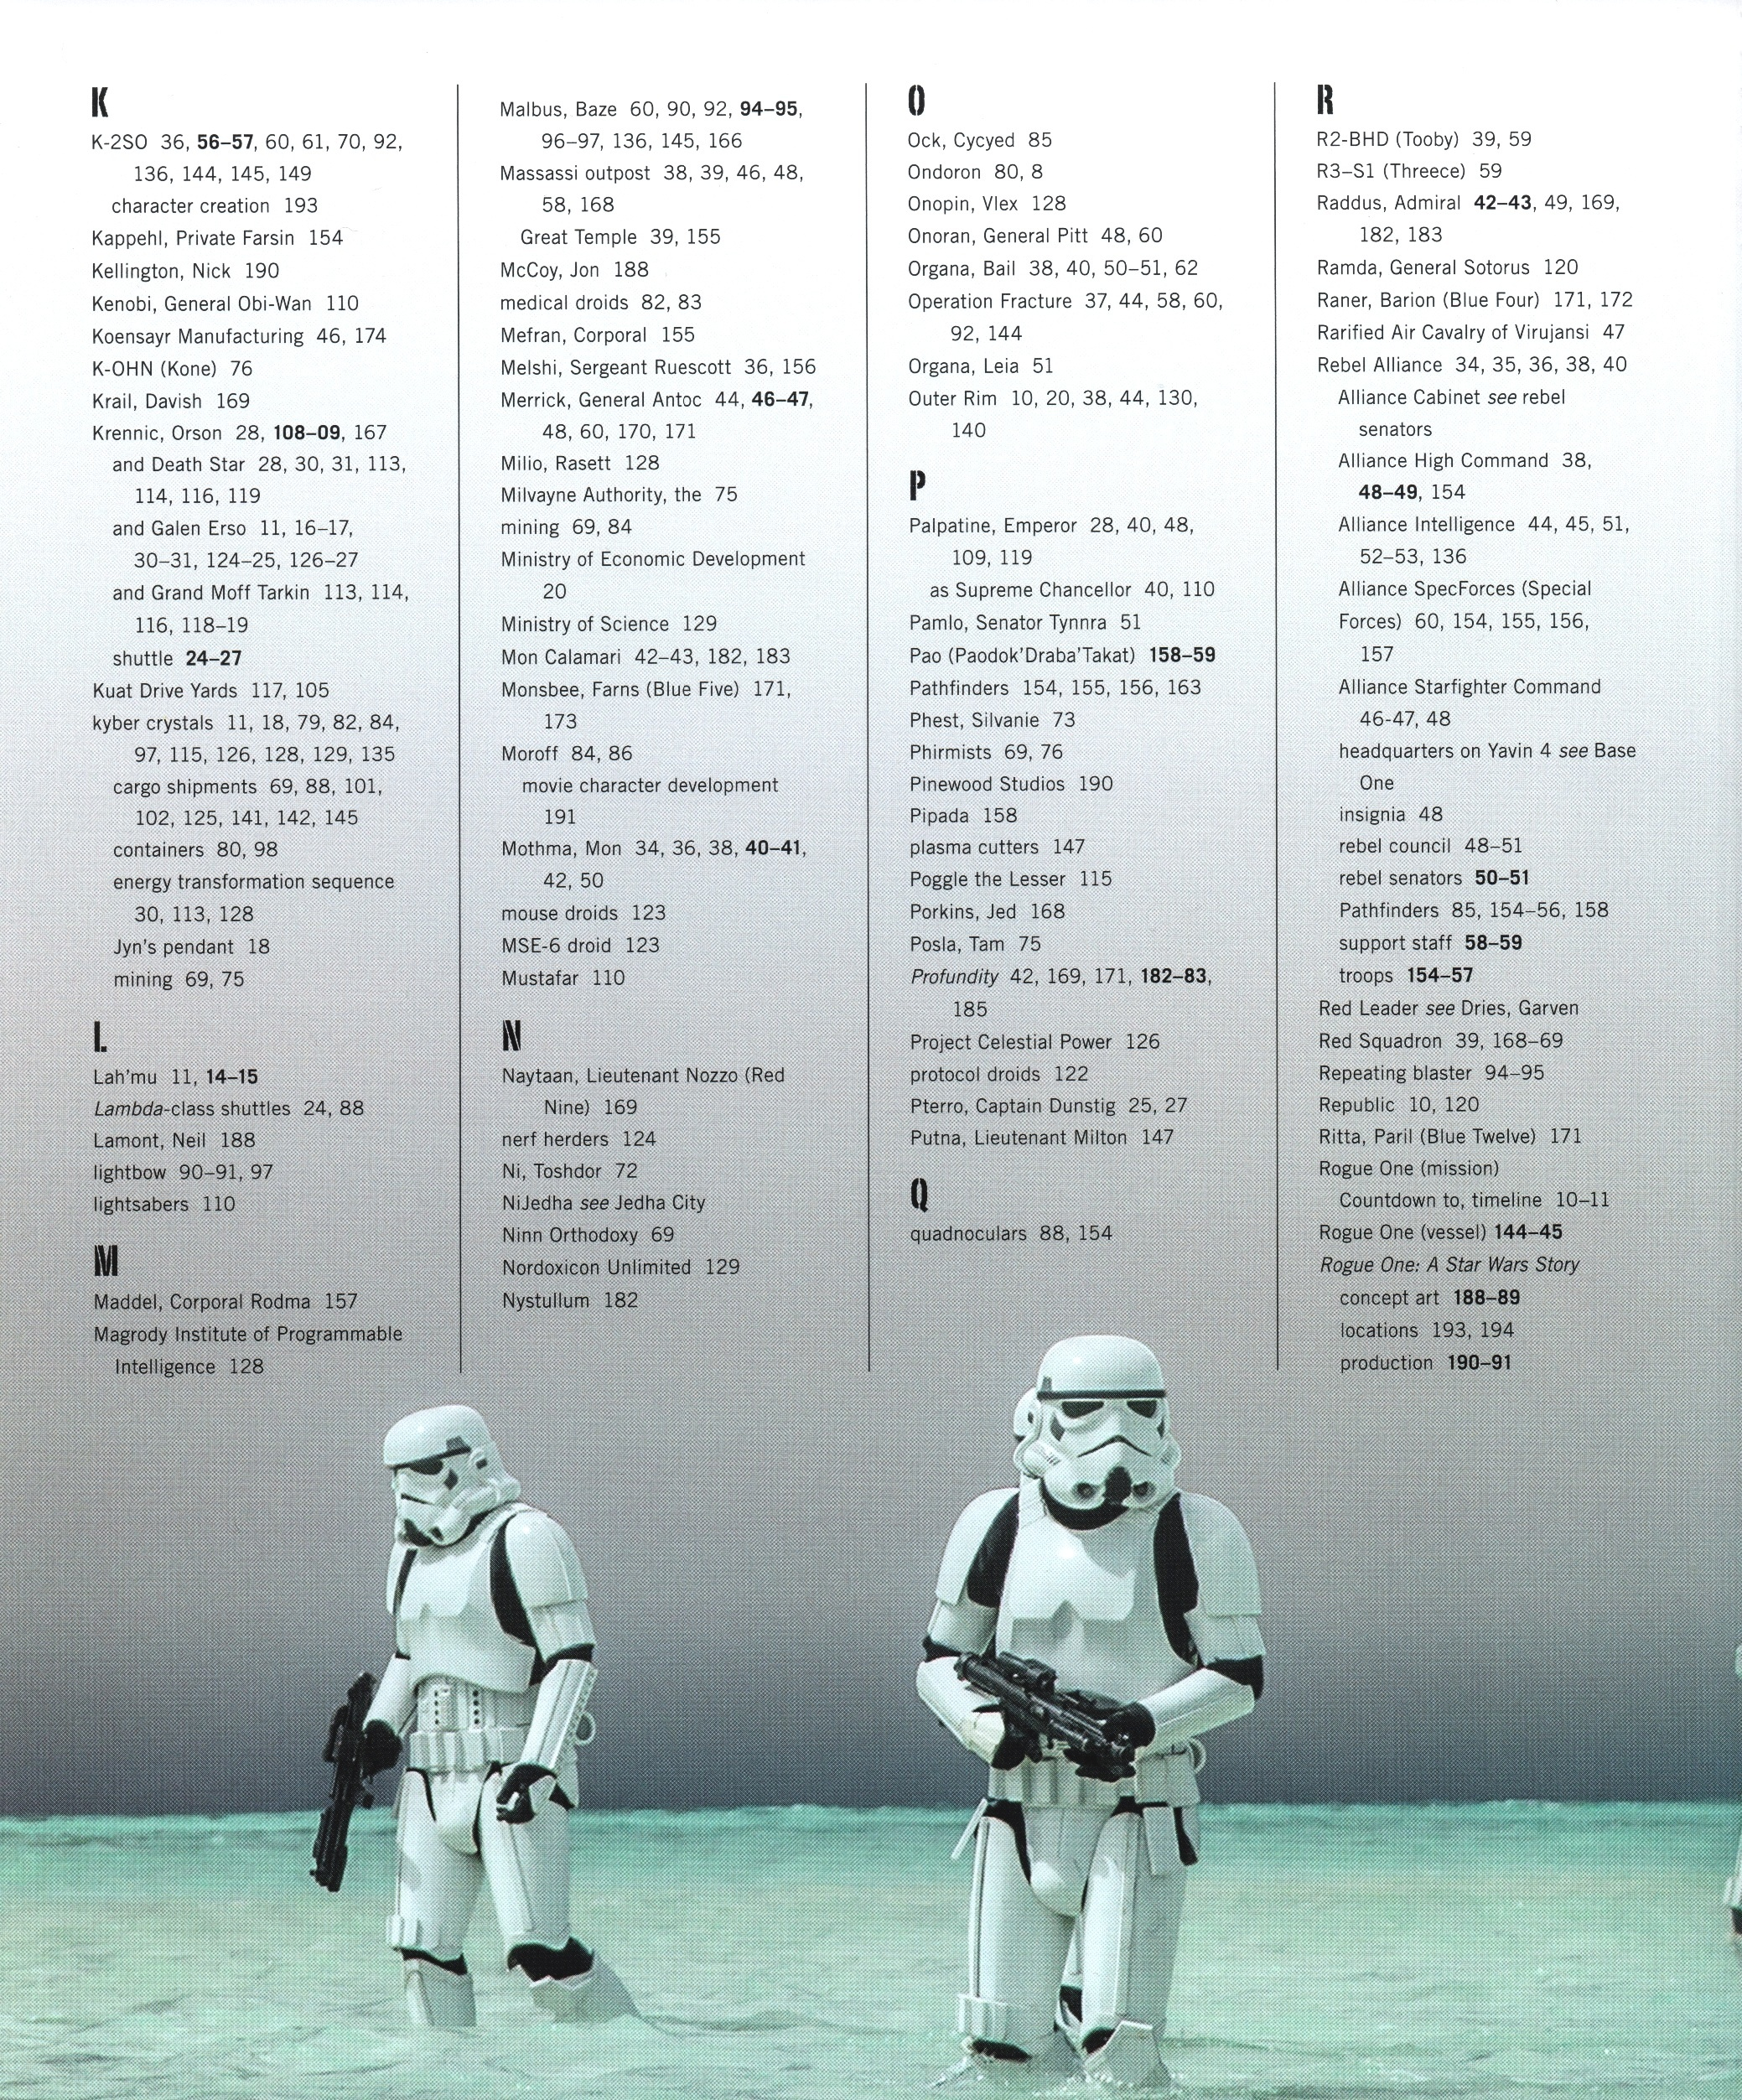 Rogue One Ultimate Visual Guide (b0bafett_Empire) p198